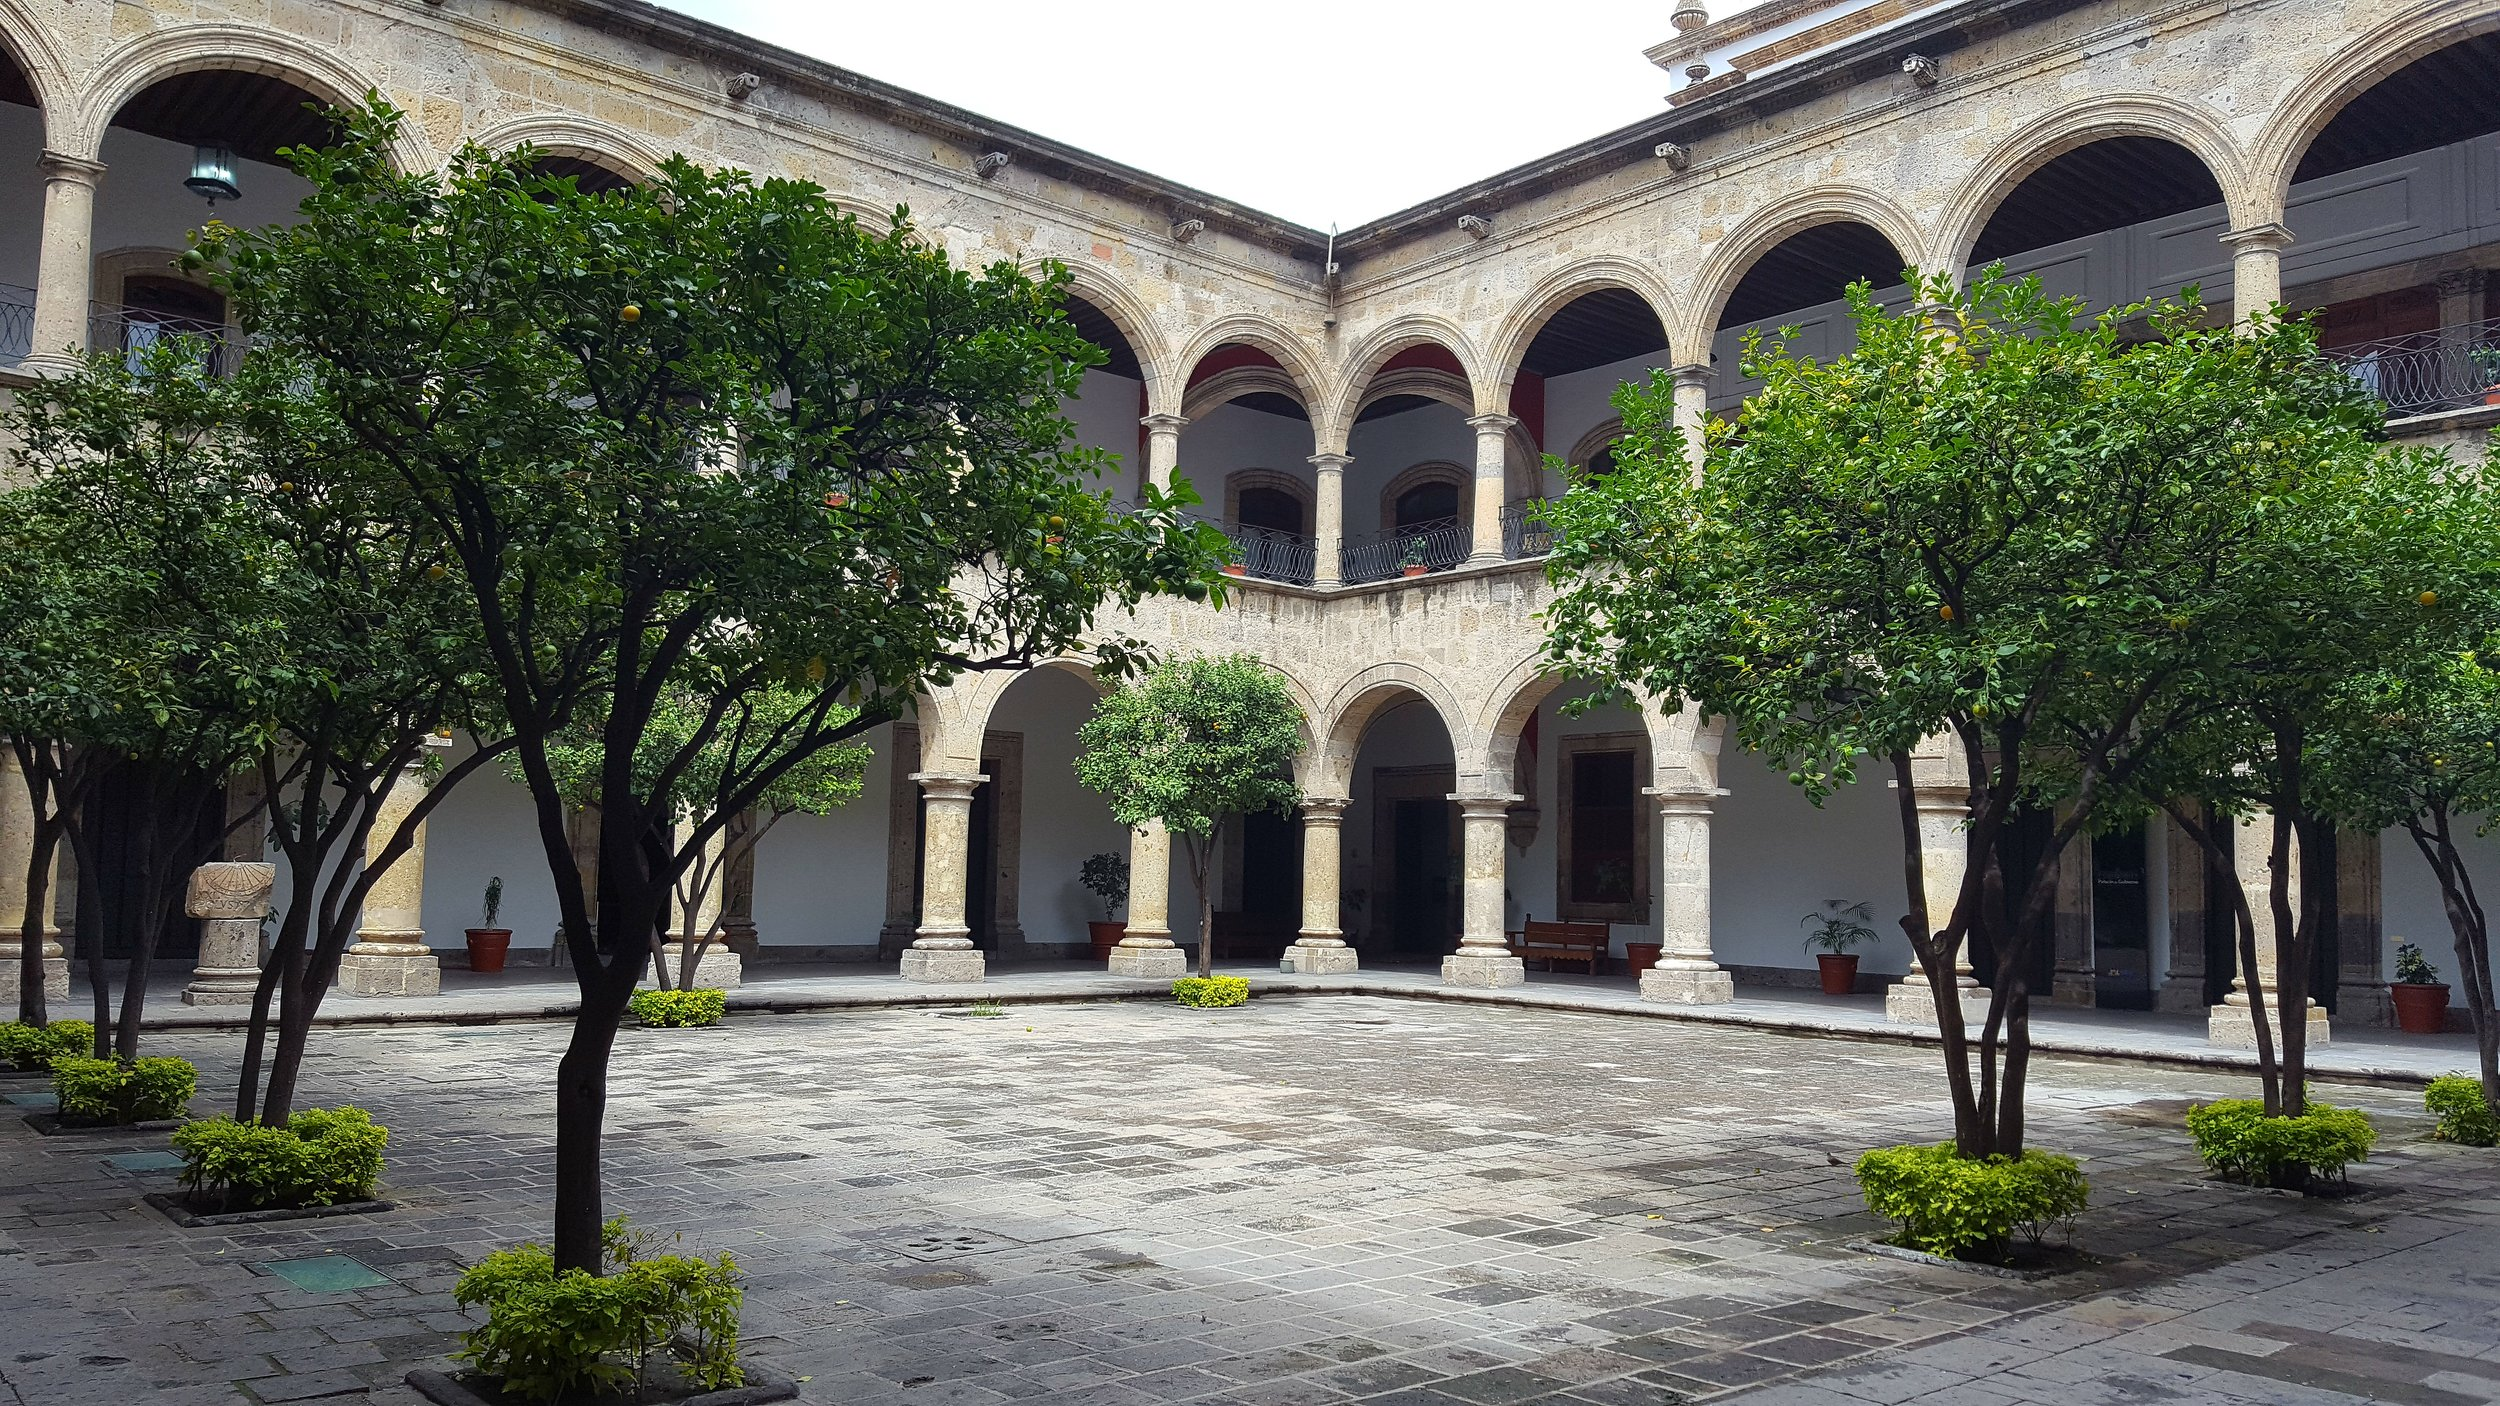 Palacio de Gobierno is a MUST for photographers and travelers heading to Guadalajara